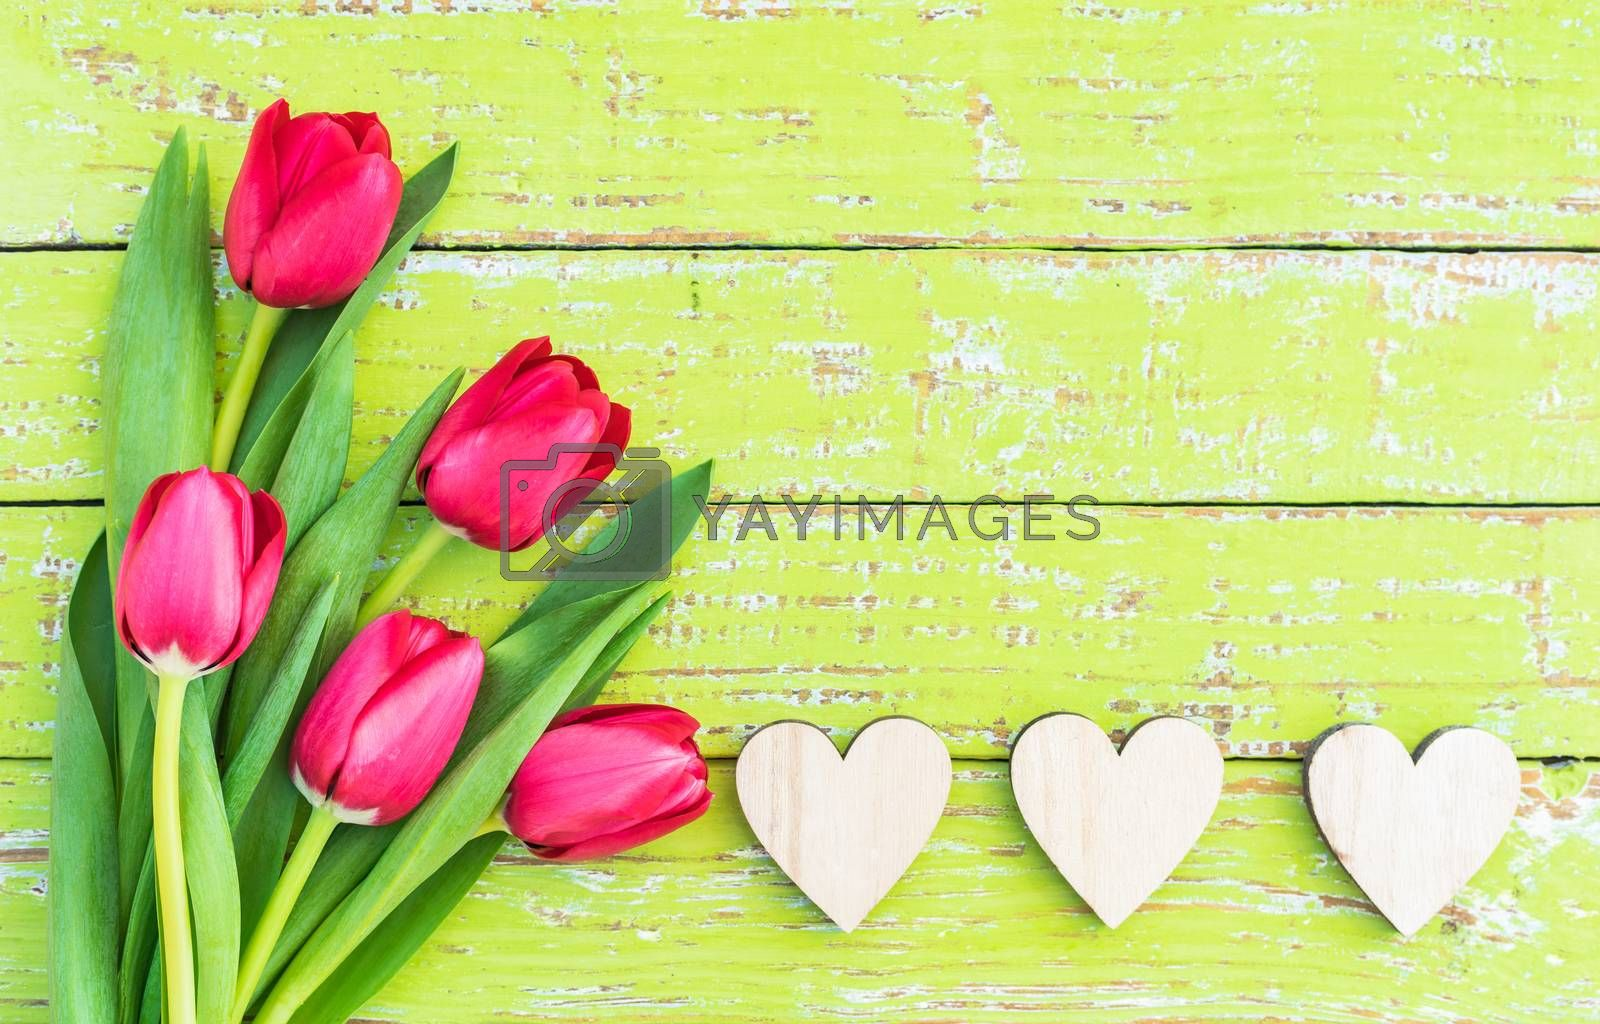 Romantic Valentines day background with red flowers and hearts